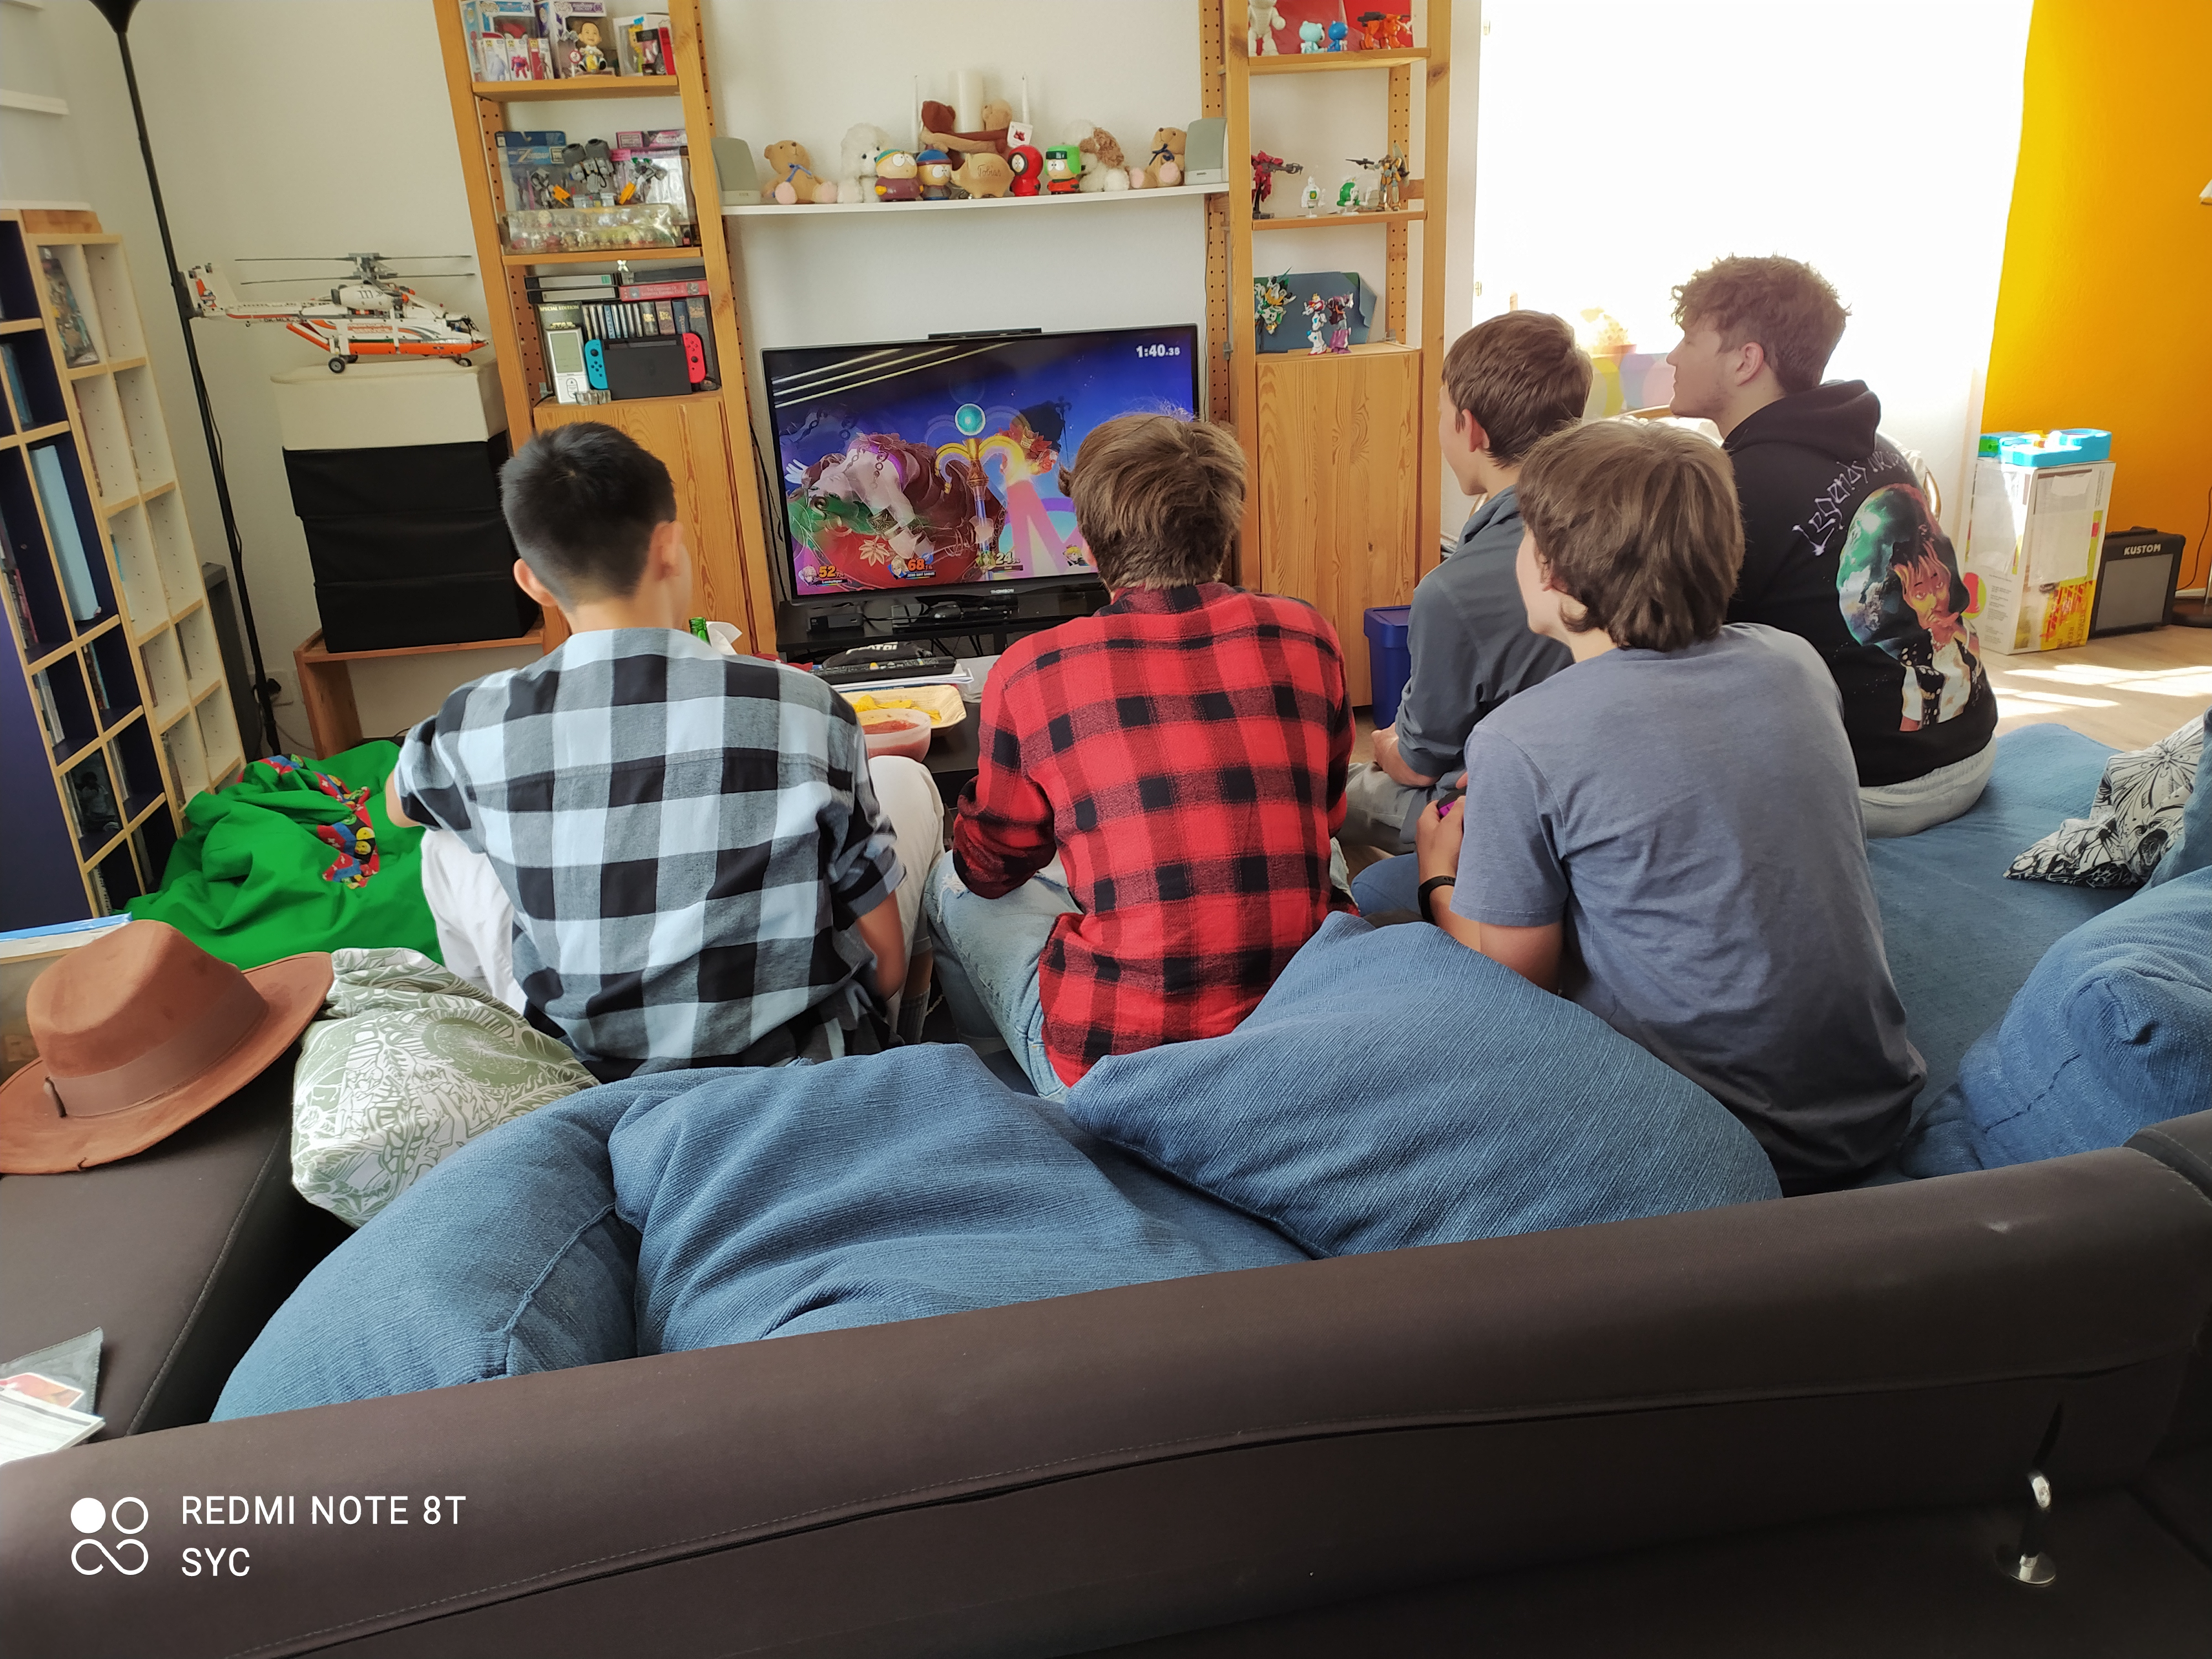 Gaming with friends